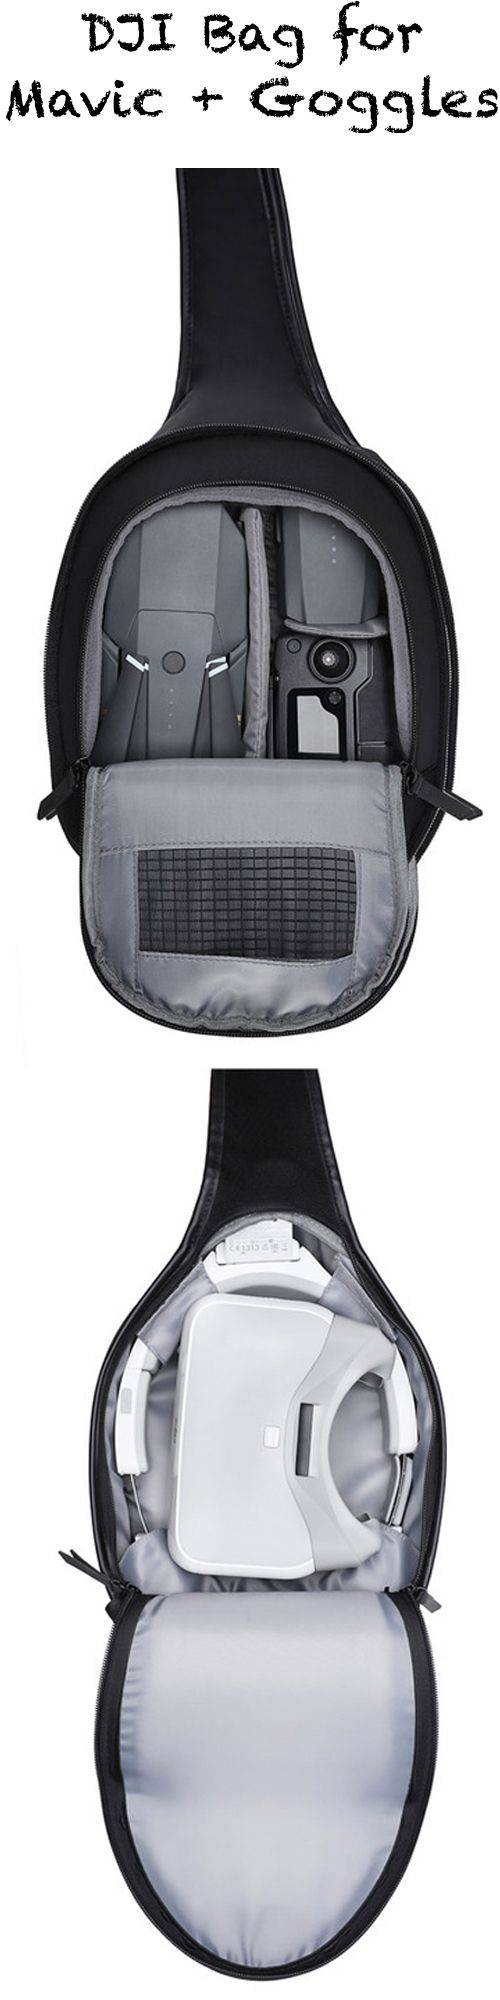 Finally a (Sling-) Bag from DJI for the DJI Mavic Pro AND the DJI Goggles!  Check the Accessories at the official DJI Website: http://click.dji.com/AAdm-G6risRtCcOOaiJj?pm=link